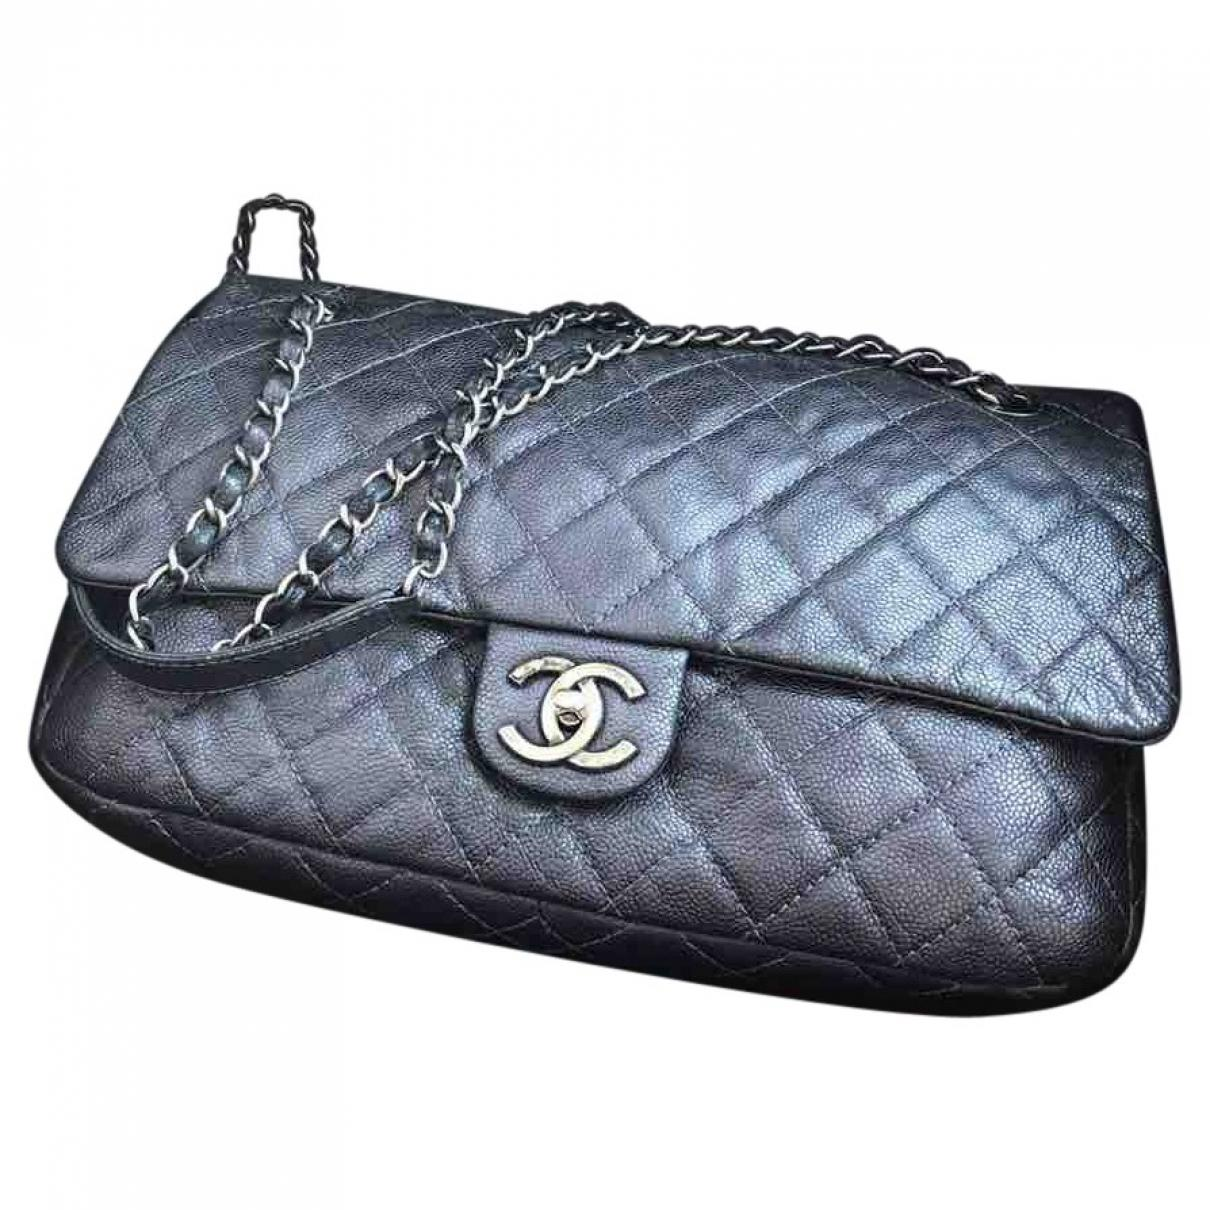 cd97ac0840bb Lyst - Chanel Timeless Leather Handbag in Black